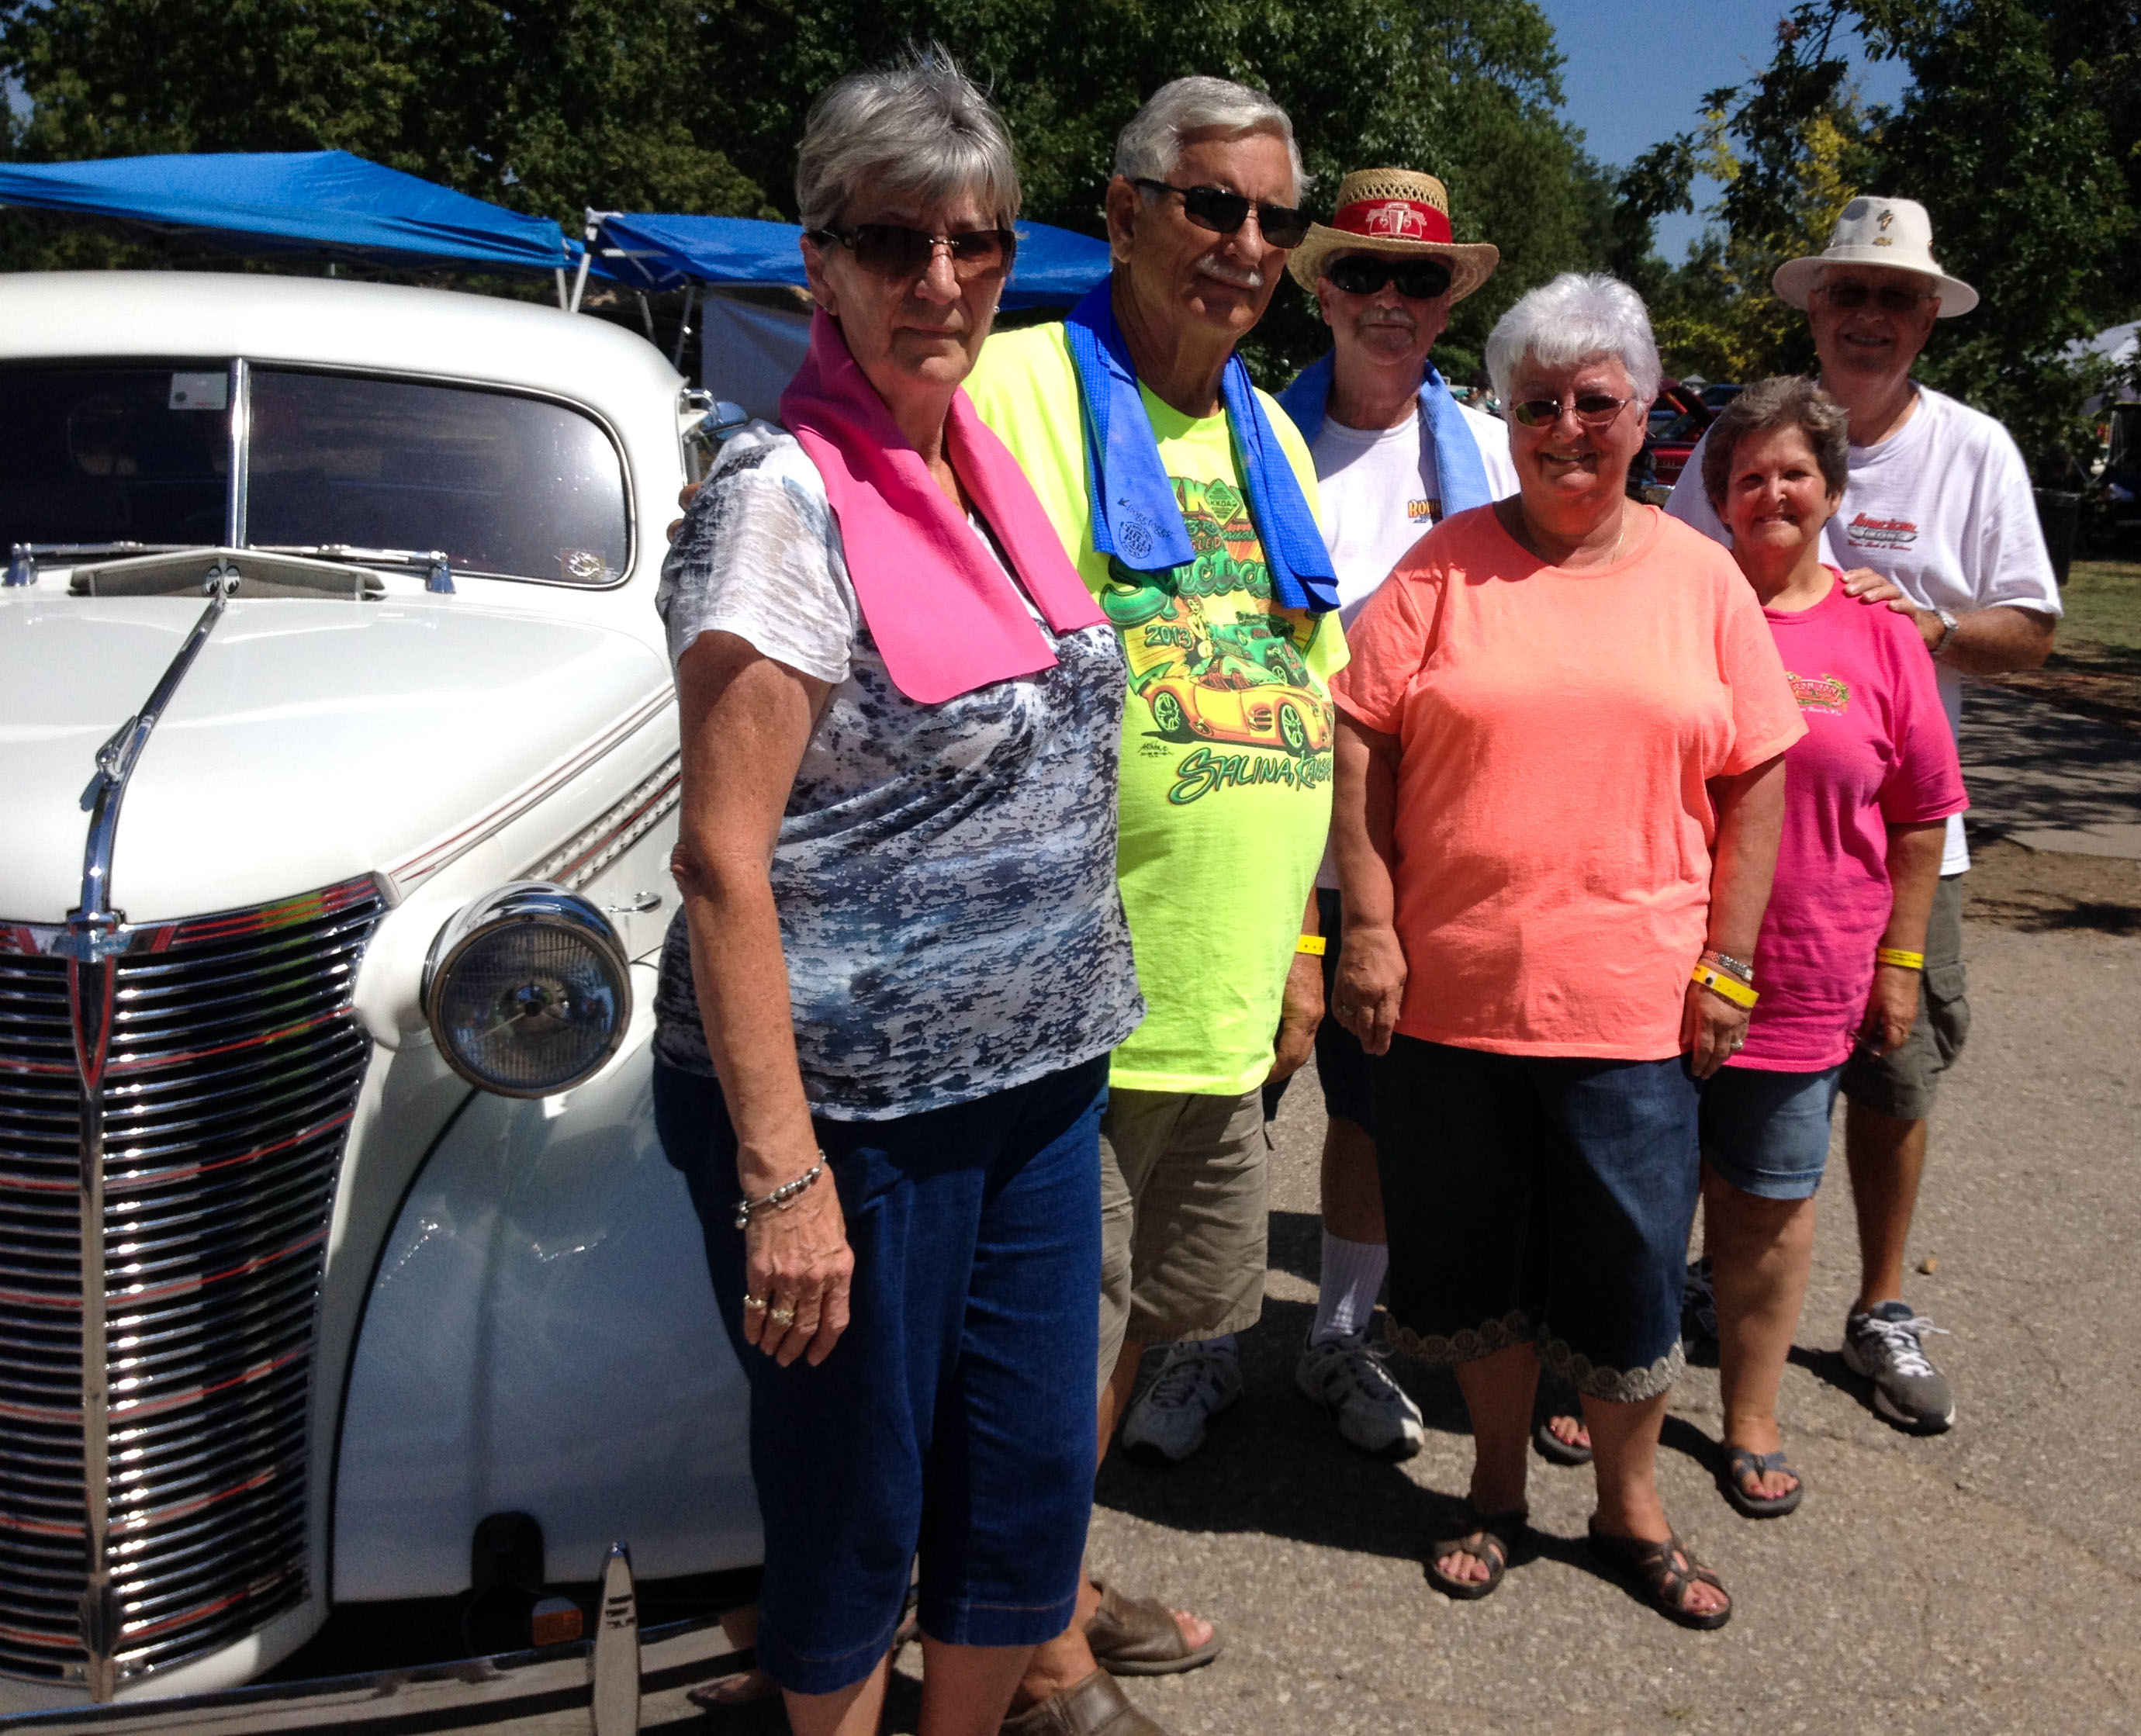 Clifton (w/blue scarf) and crew ready to hand out cold water and hope at the 2015 KKOA Leadsled Spectacular